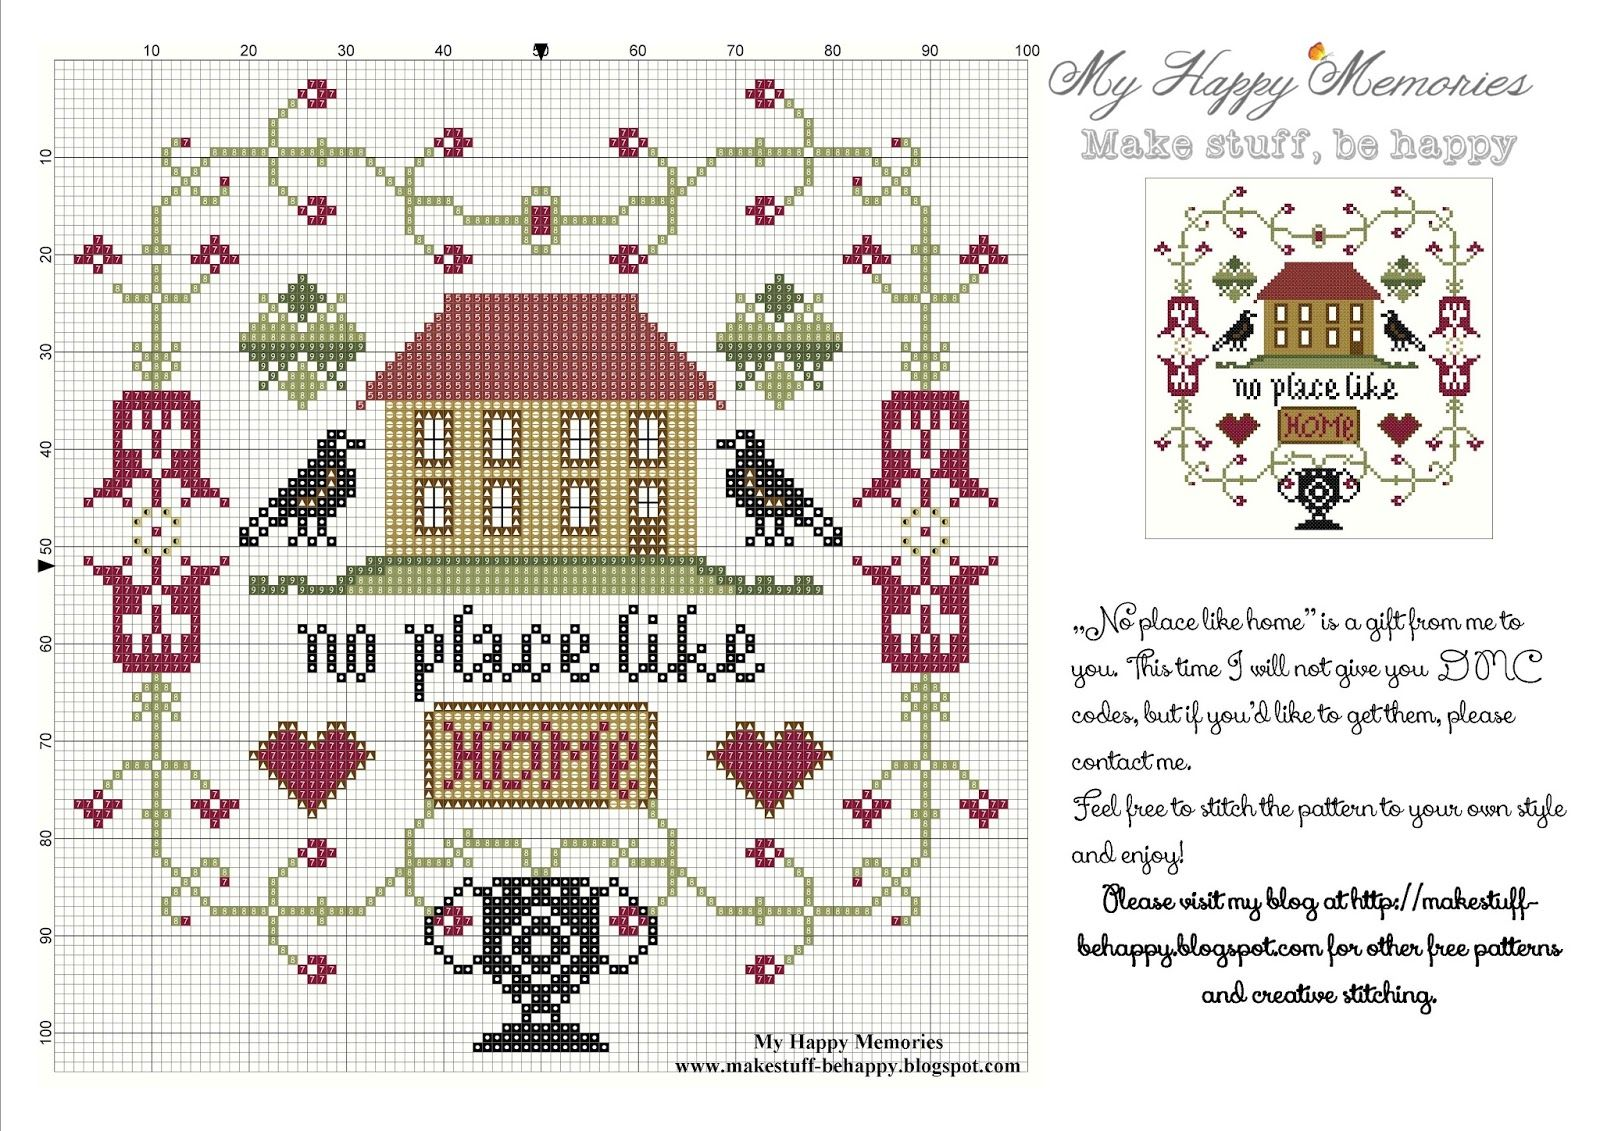 How to choose patterns for cross stitch 3